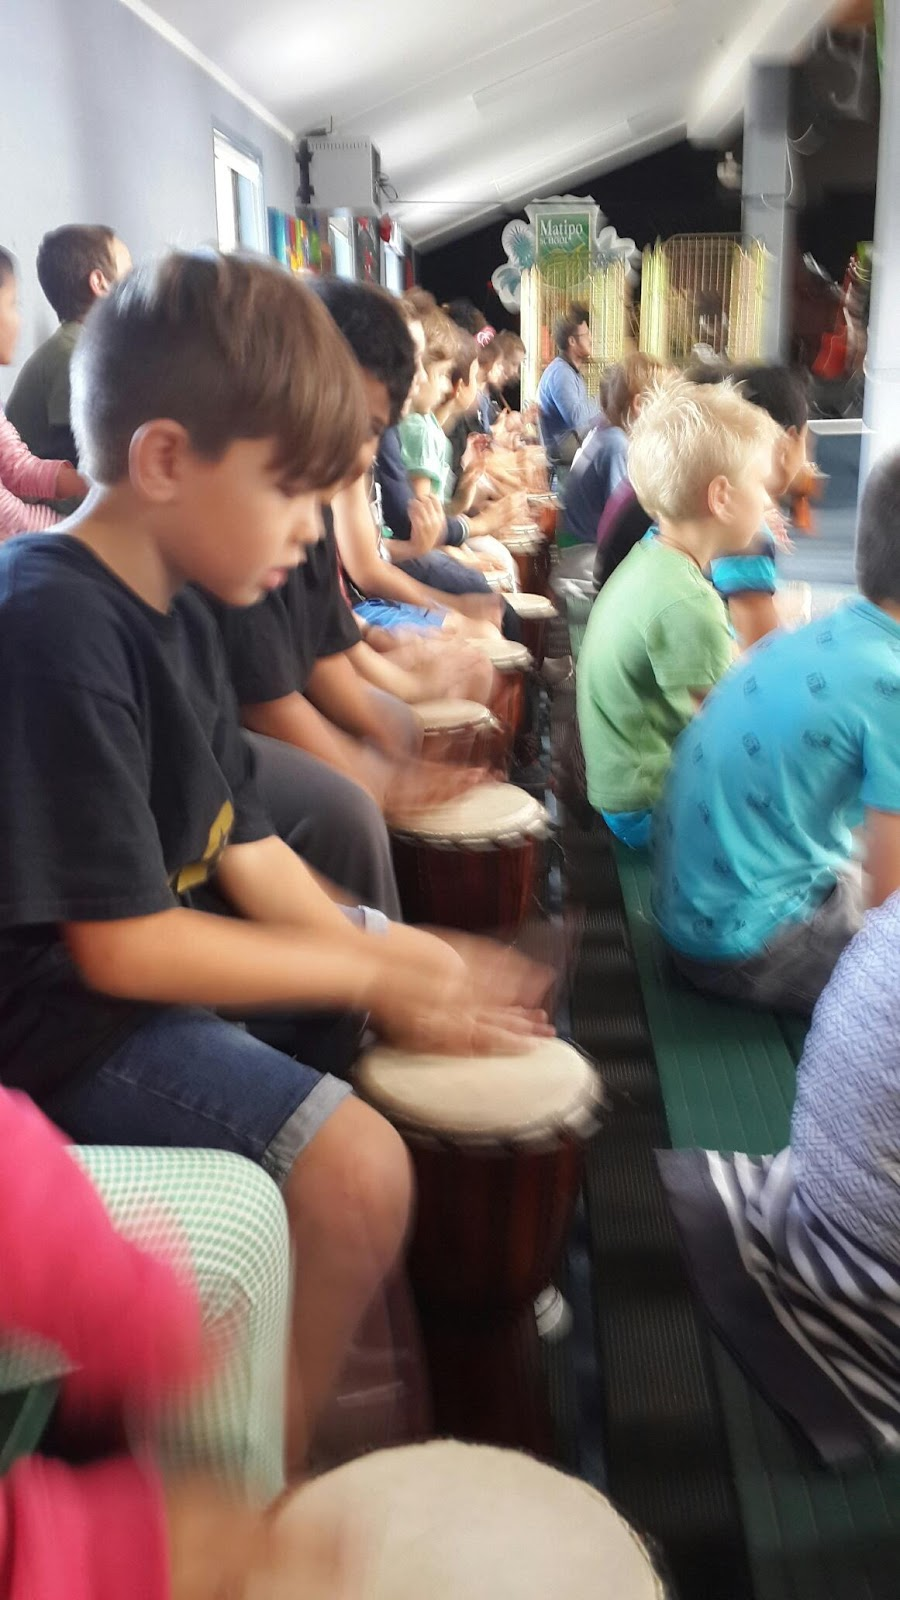 C:\Users\Michael\Downloads\drumshow\20160519_111016_resized_1.jpg